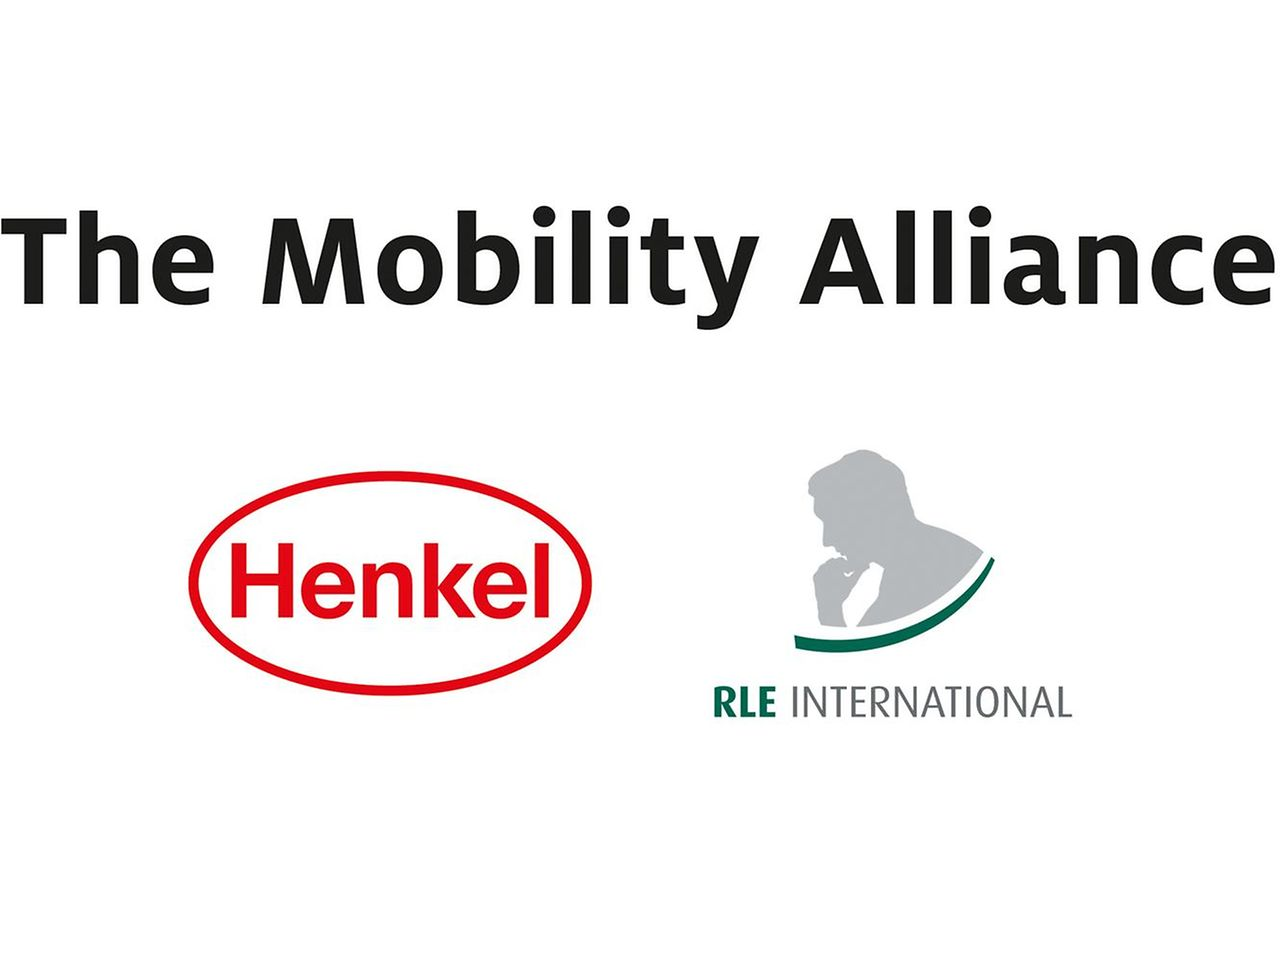 The Mobility Alliance: Henkel and RLE International